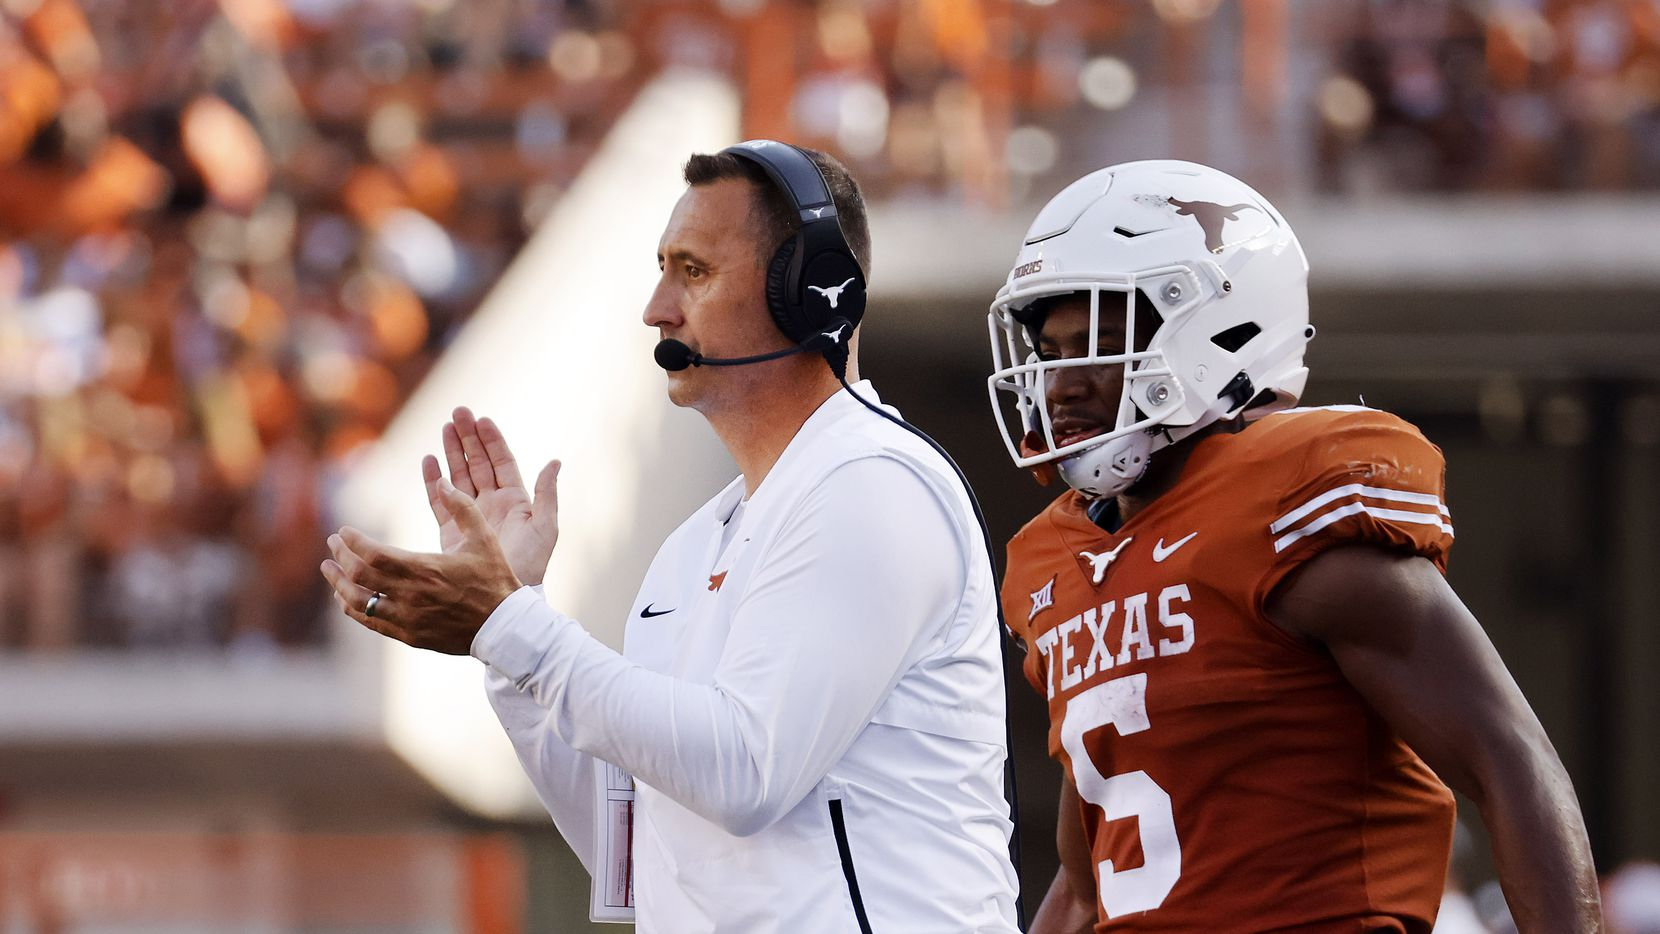 Texas Longhorns head coach Steve Sarkisian applauds his players as they faced the Louisiana-Lafayette Ragin Cajuns during the second half at DKR-Texas Memorial Stadium in Austin, Saturday, September 4, 2021.